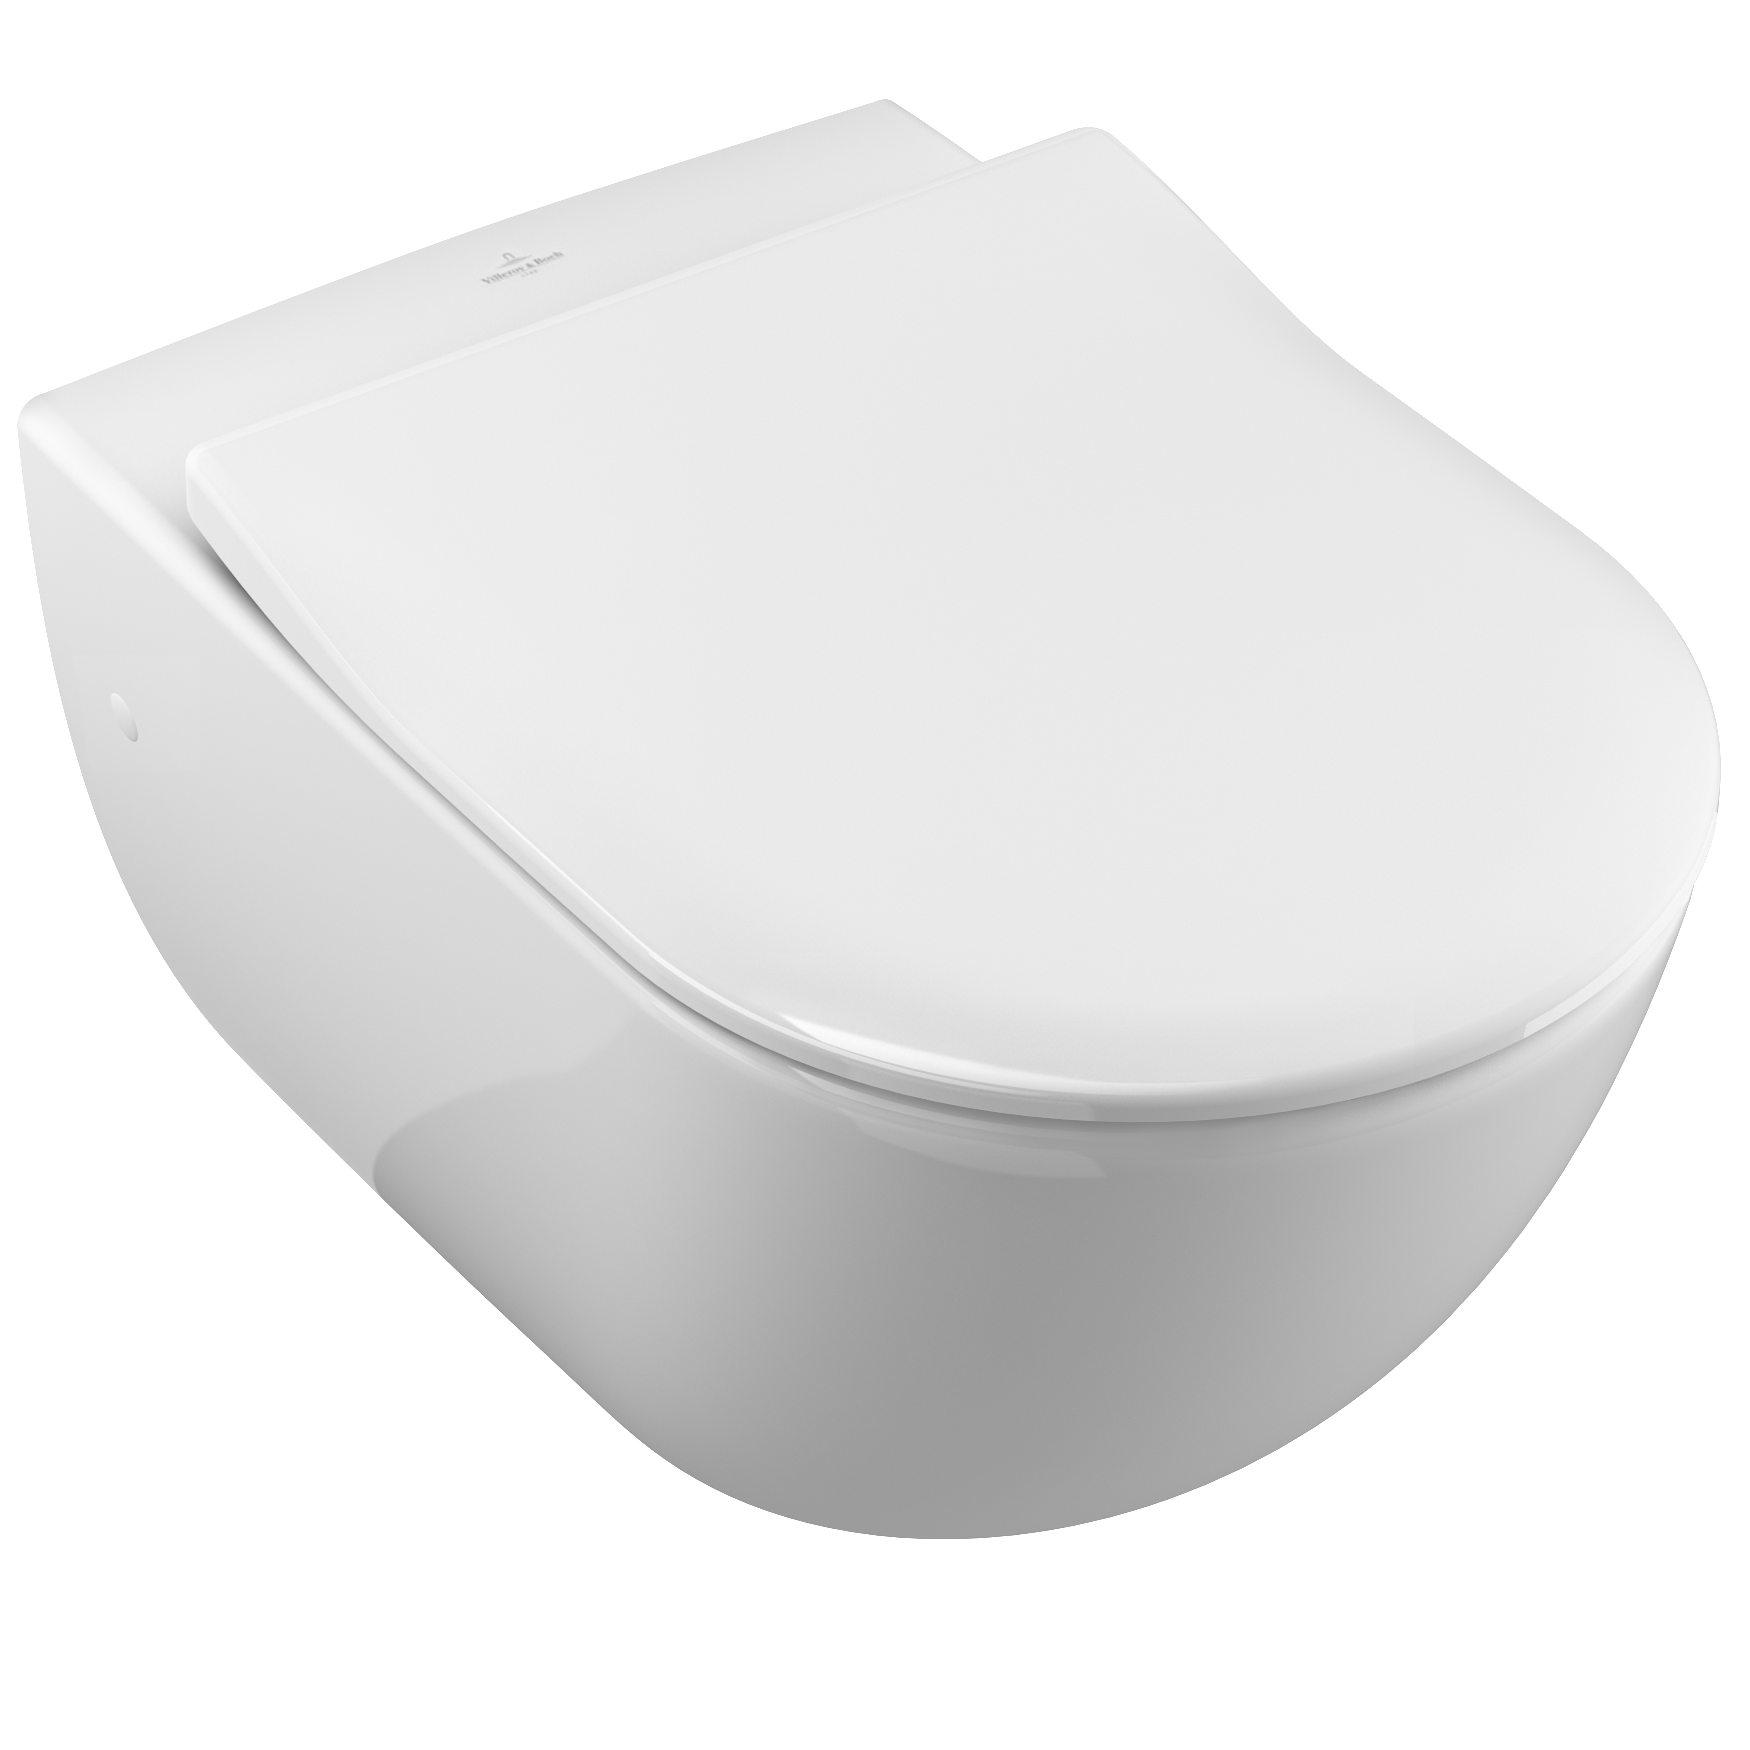 Villeroy & Boch Hanging toilet bowl Subway Weiss Alpin 56,5 x 37,5cm (66001001)